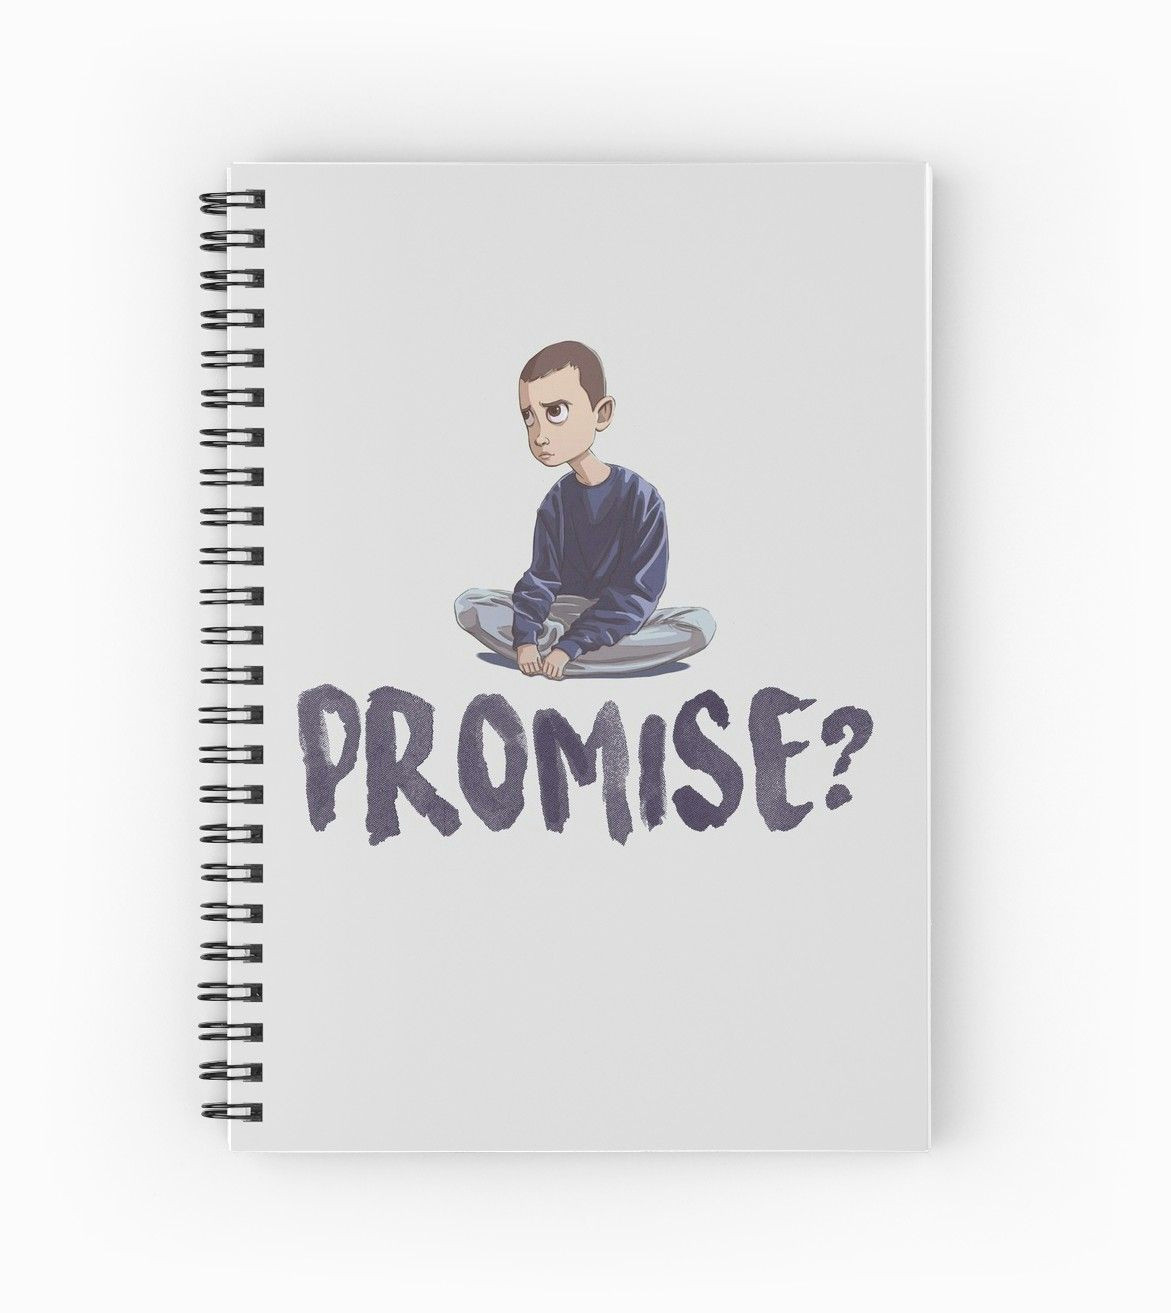 eleven promise spiral notebook stranger things the upside down will indiana mike madmax max eleven jane lucas dustin hopper steve